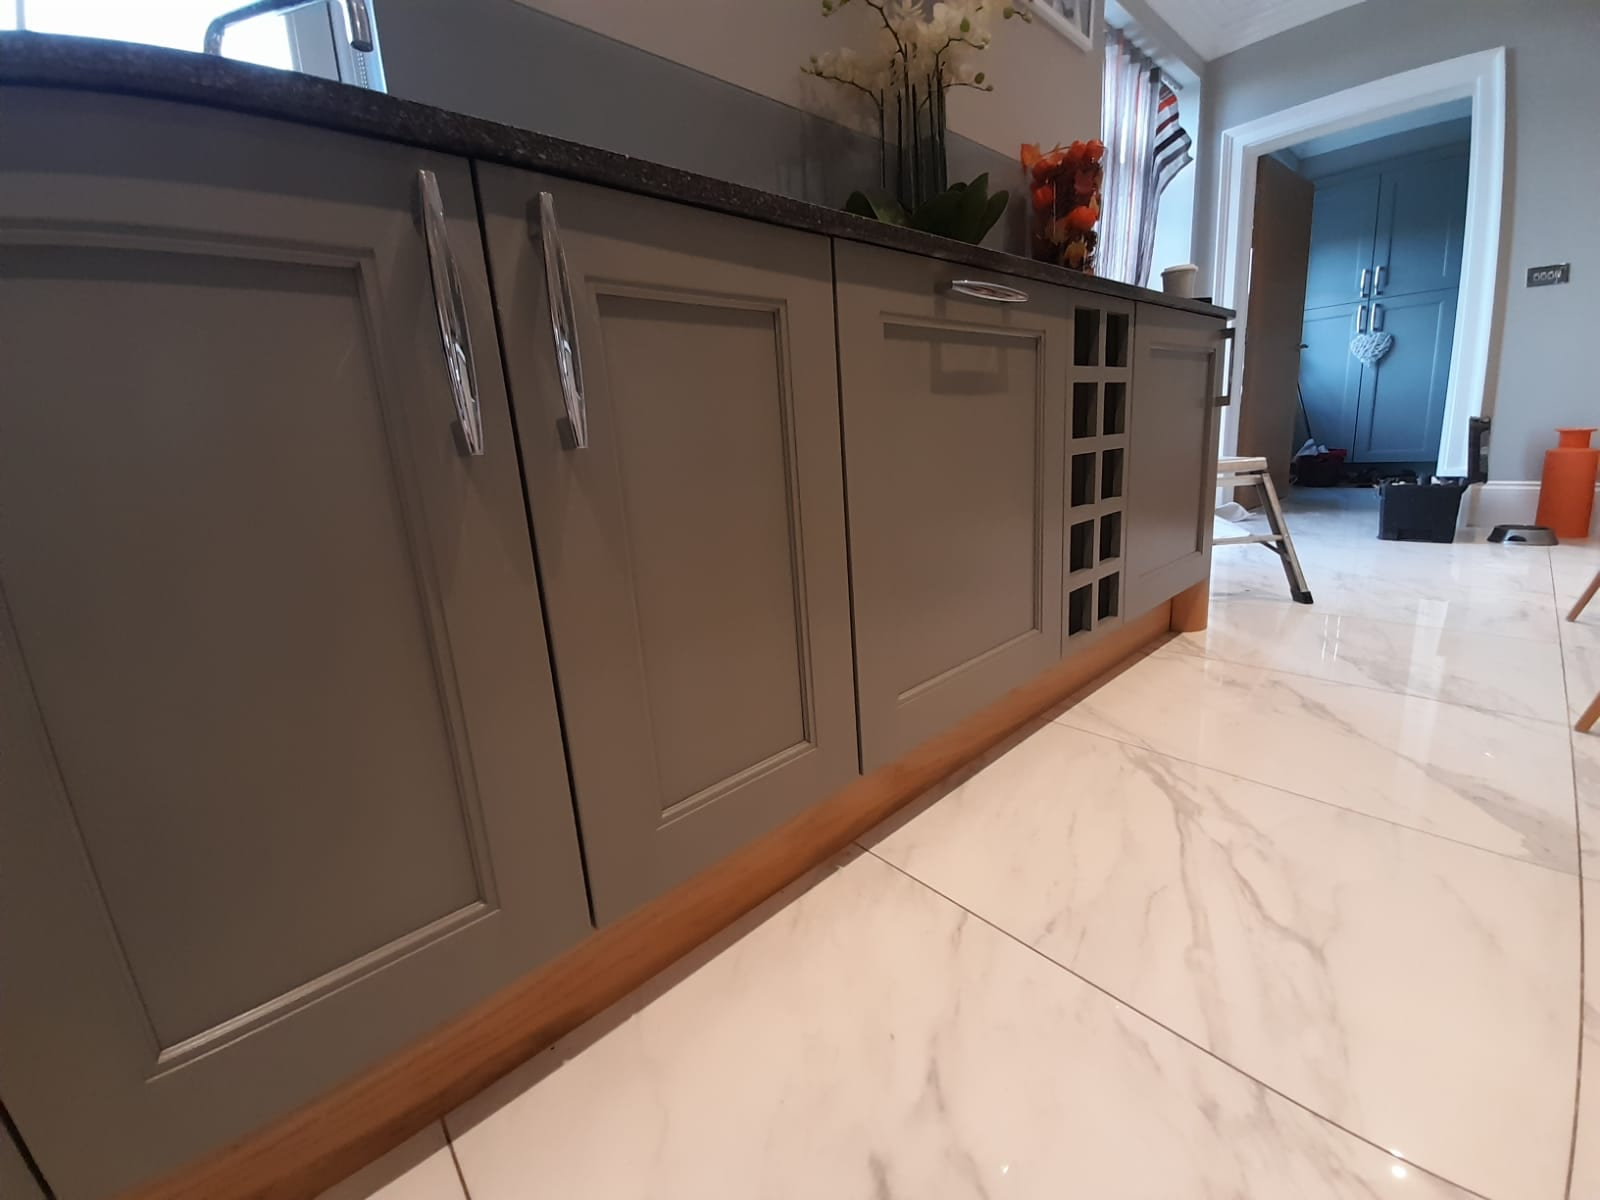 Hand painted Sink Kitchen Cabinets in Harewood, Leeds by Gareth Thompson Decorators